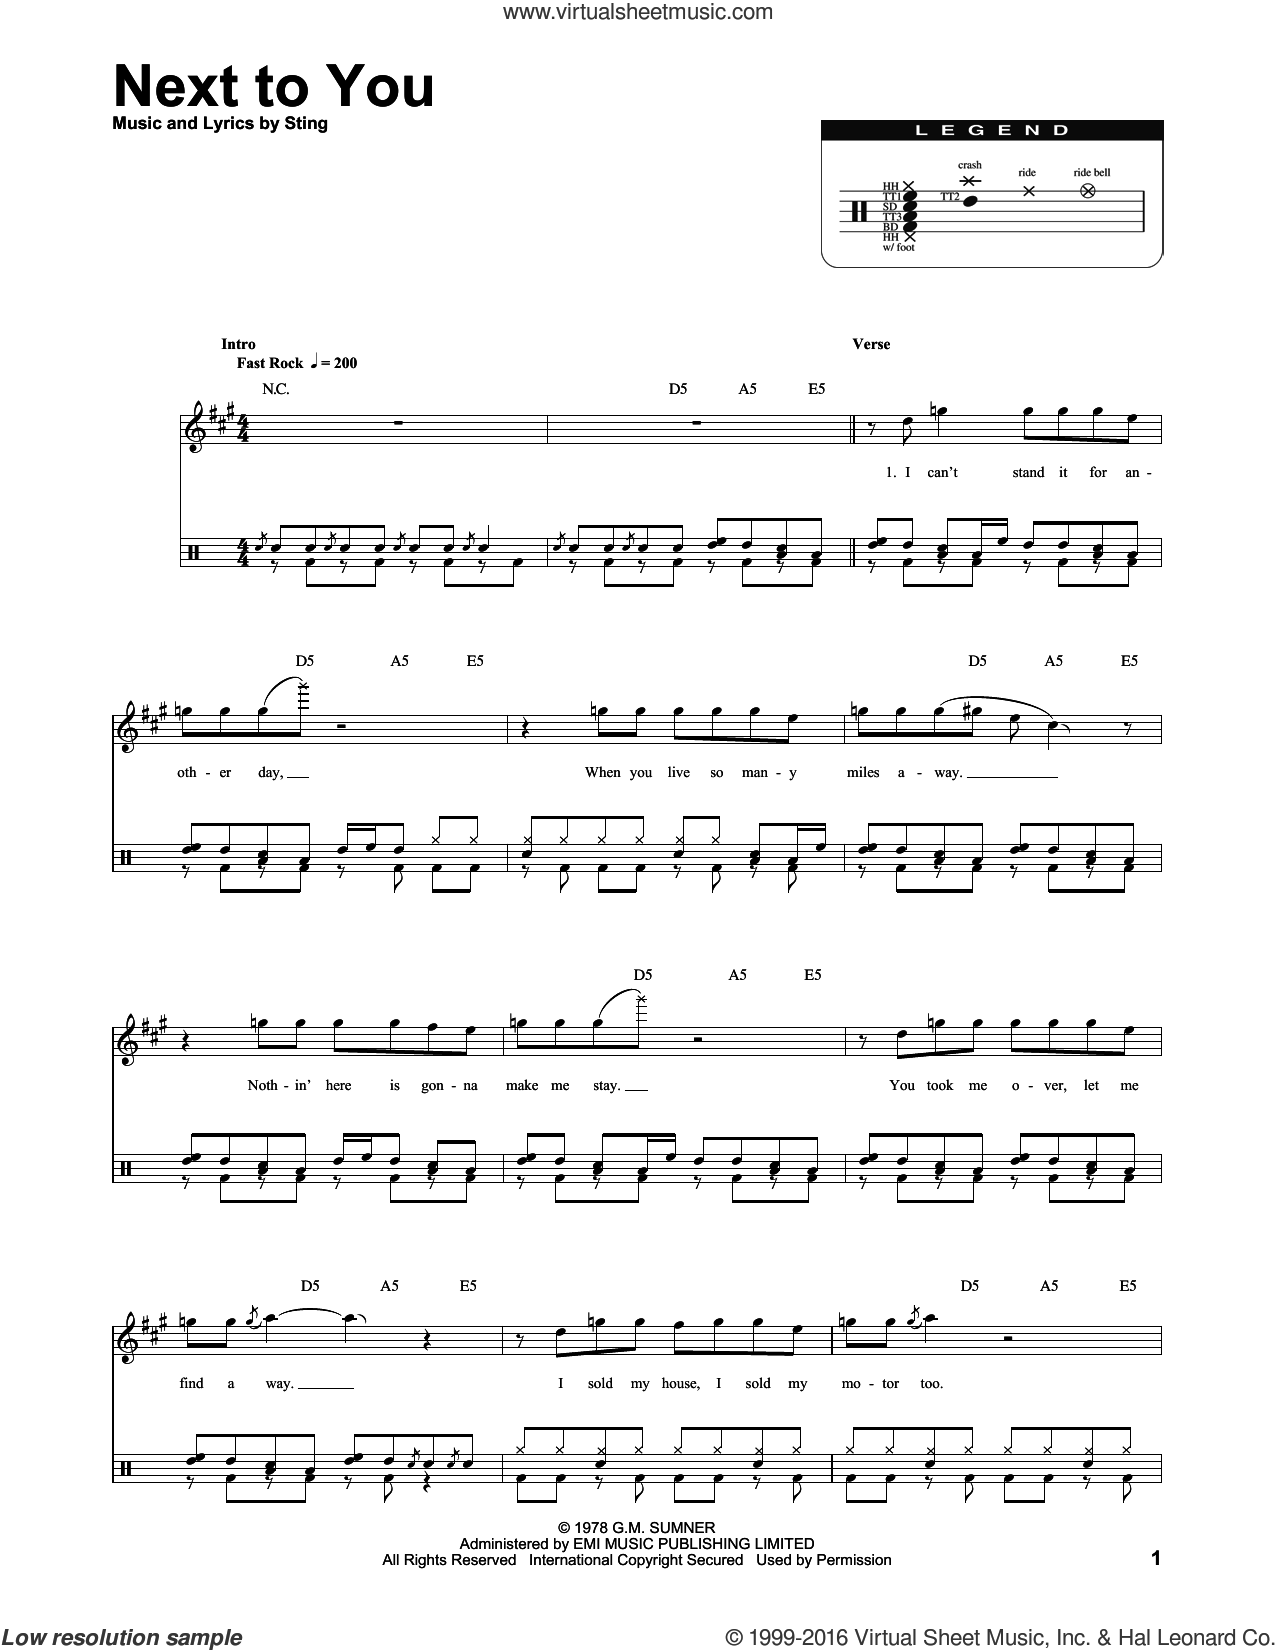 Next To You sheet music for drums by The Police and Sting, intermediate skill level